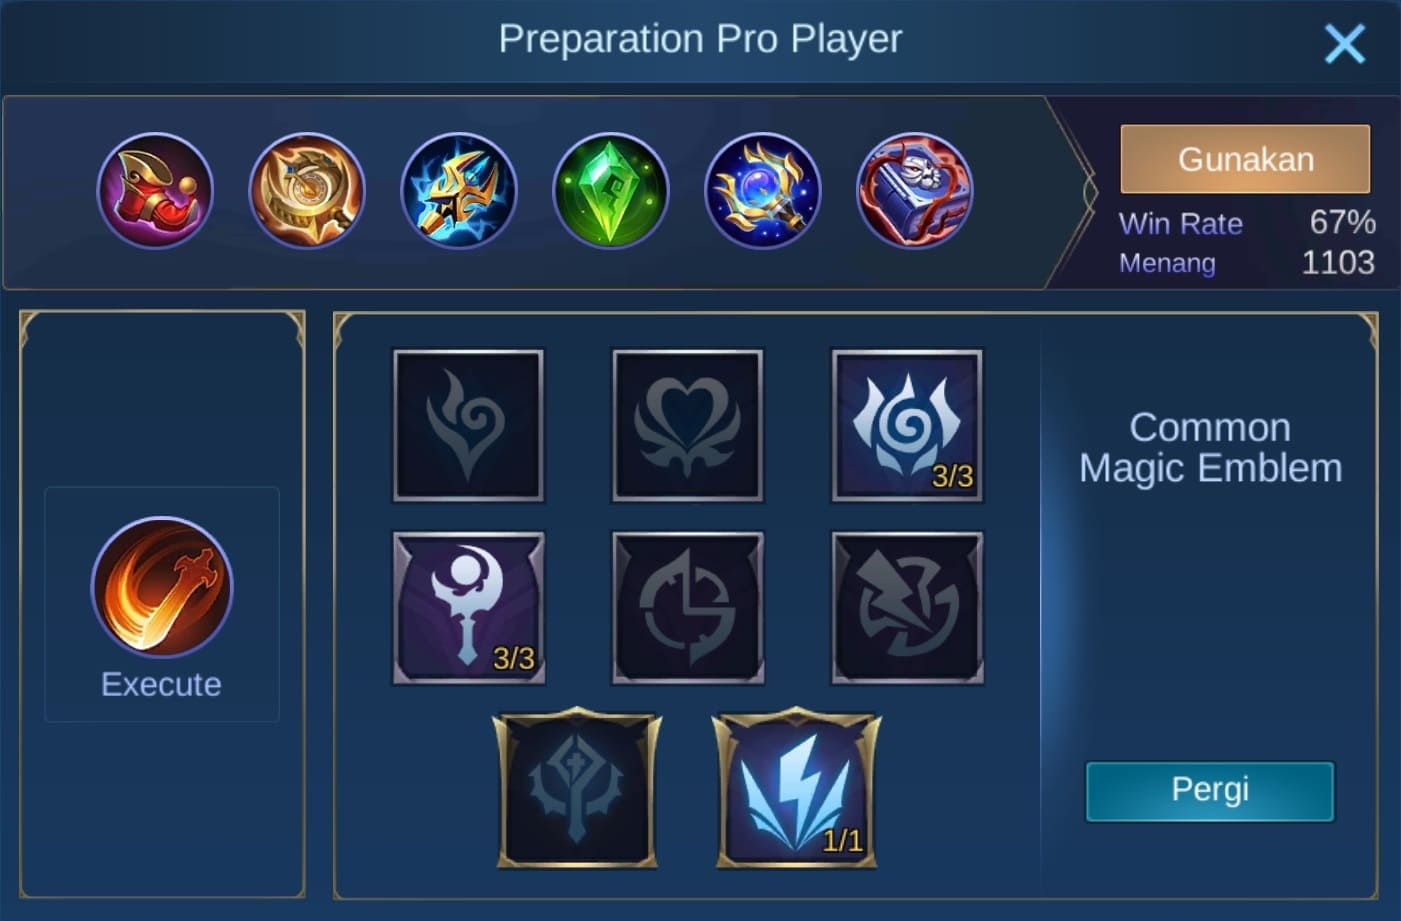 build item faramis mobile legends (ML)